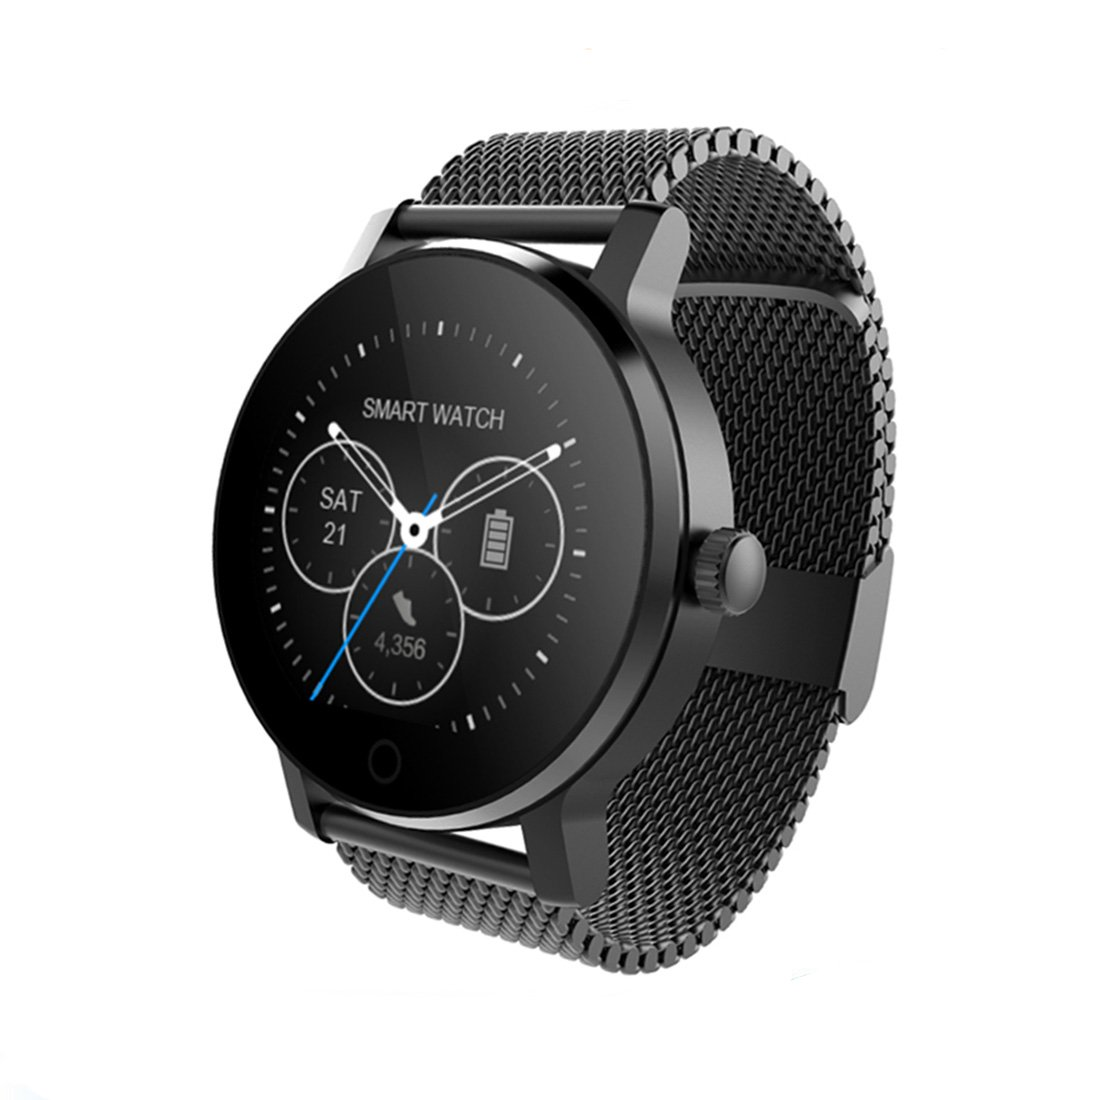 SMA-09 Smart Fitness Tracker Watch Smartwatch for iPhone 5 5s 6 6s 6plus 7 7s 7plus 8 and Android Phone for Men Black Activity Tracker